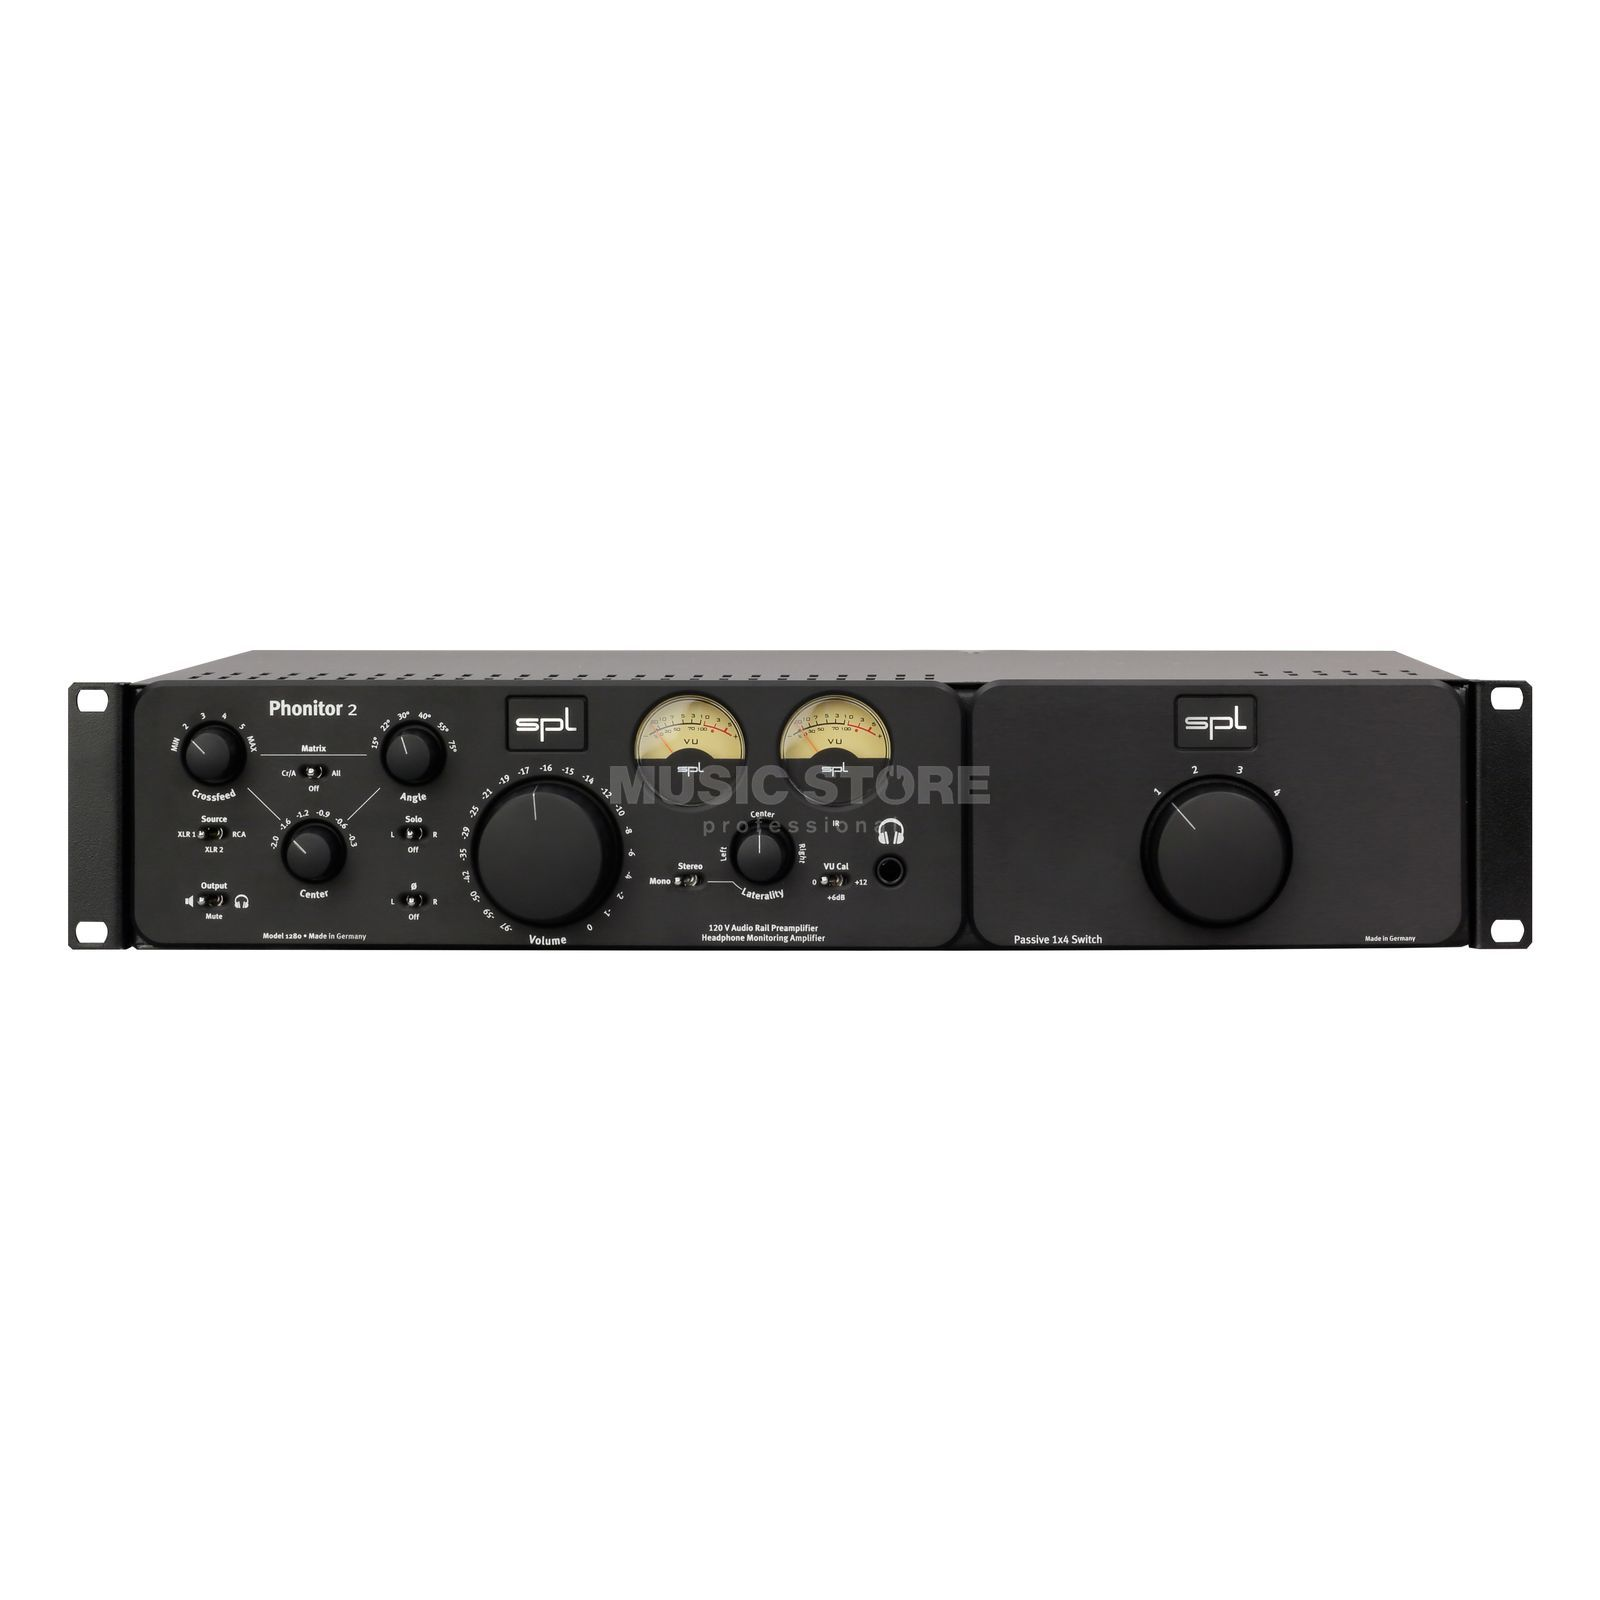 SPL Electronics Expansion Rack black Phonitor 2 / SMC 7.1 Rackmount Produktbillede